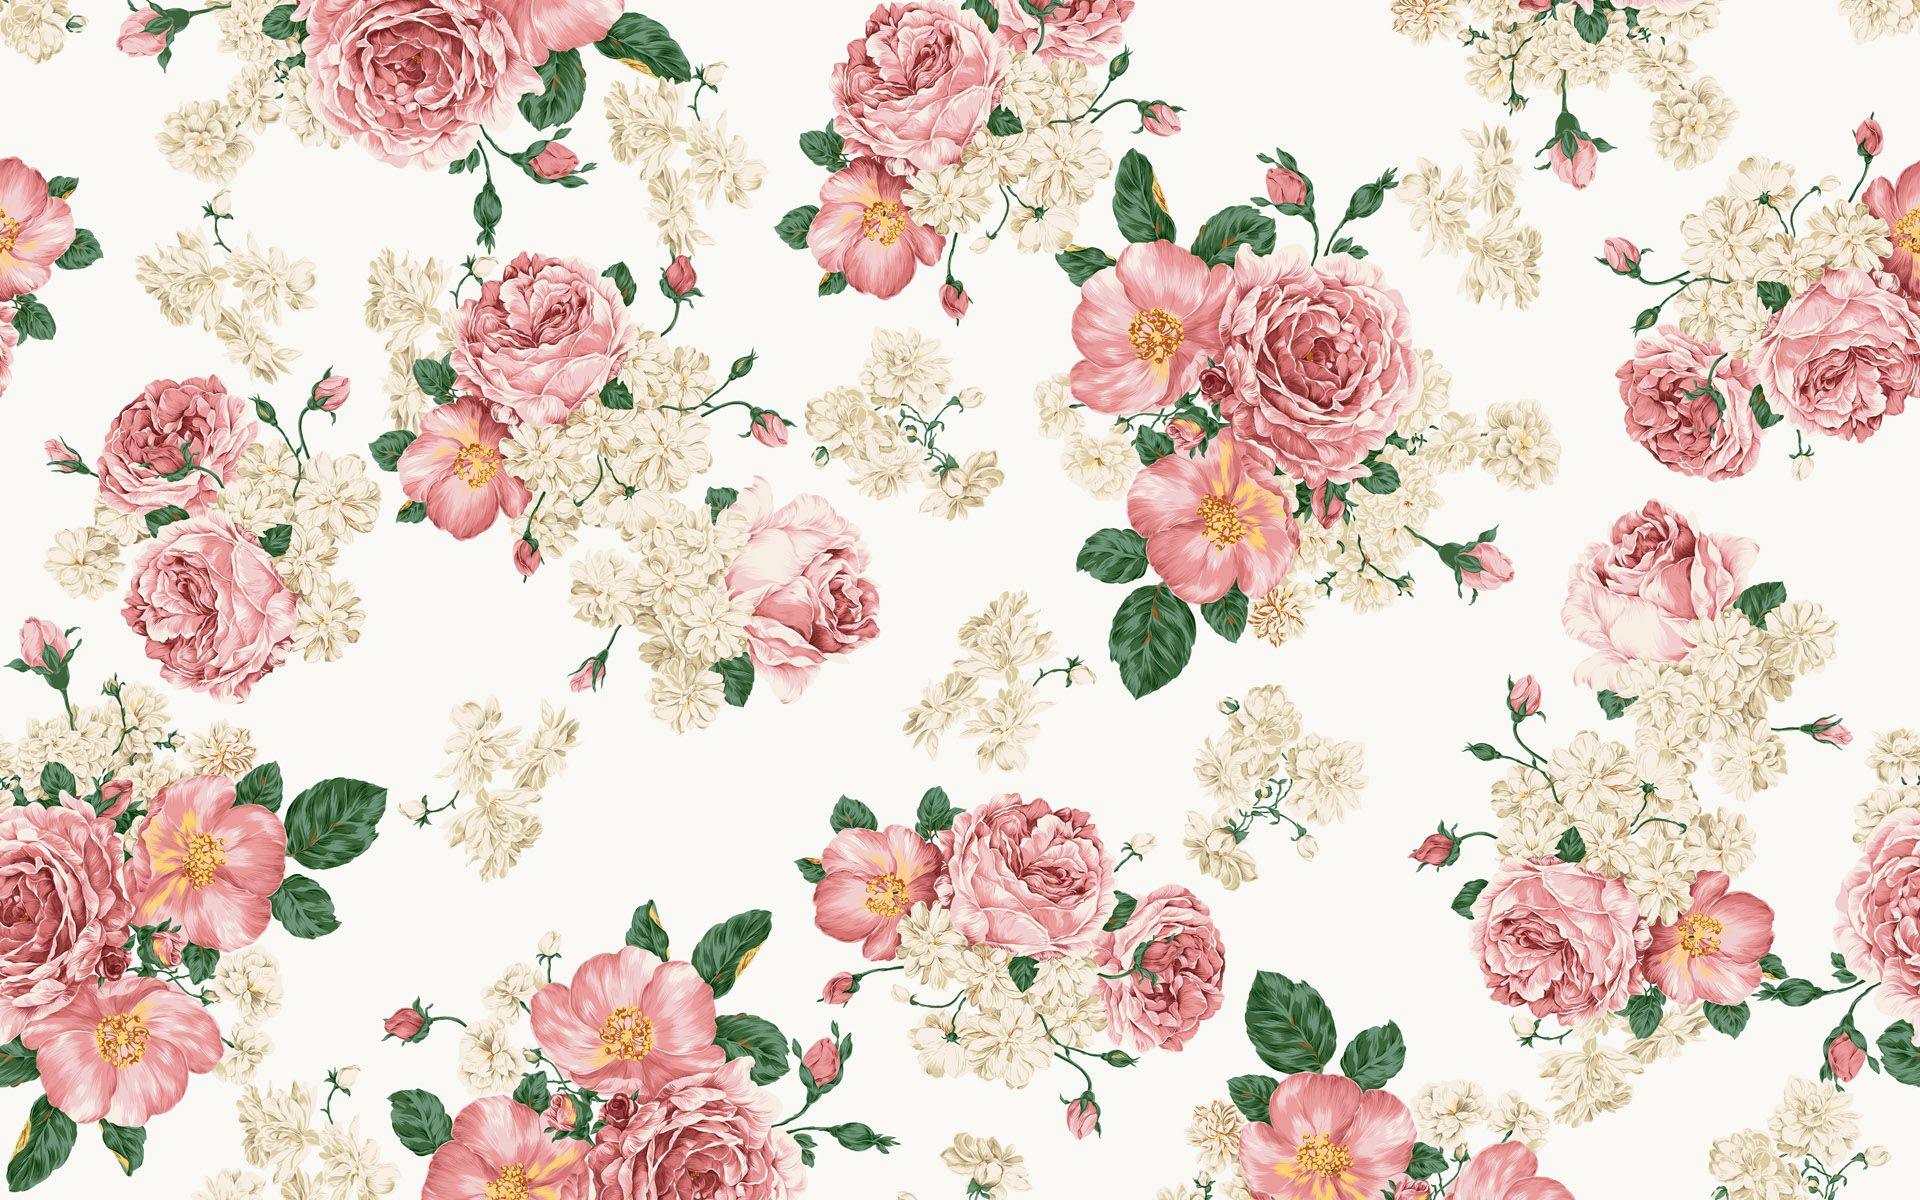 Flower Pattern Design Wallpaper High Resolution With Hd Desktop 1920x1200 Px 729 58 Kb Wallpaper Vintage Wallpaper Bunga Bunga